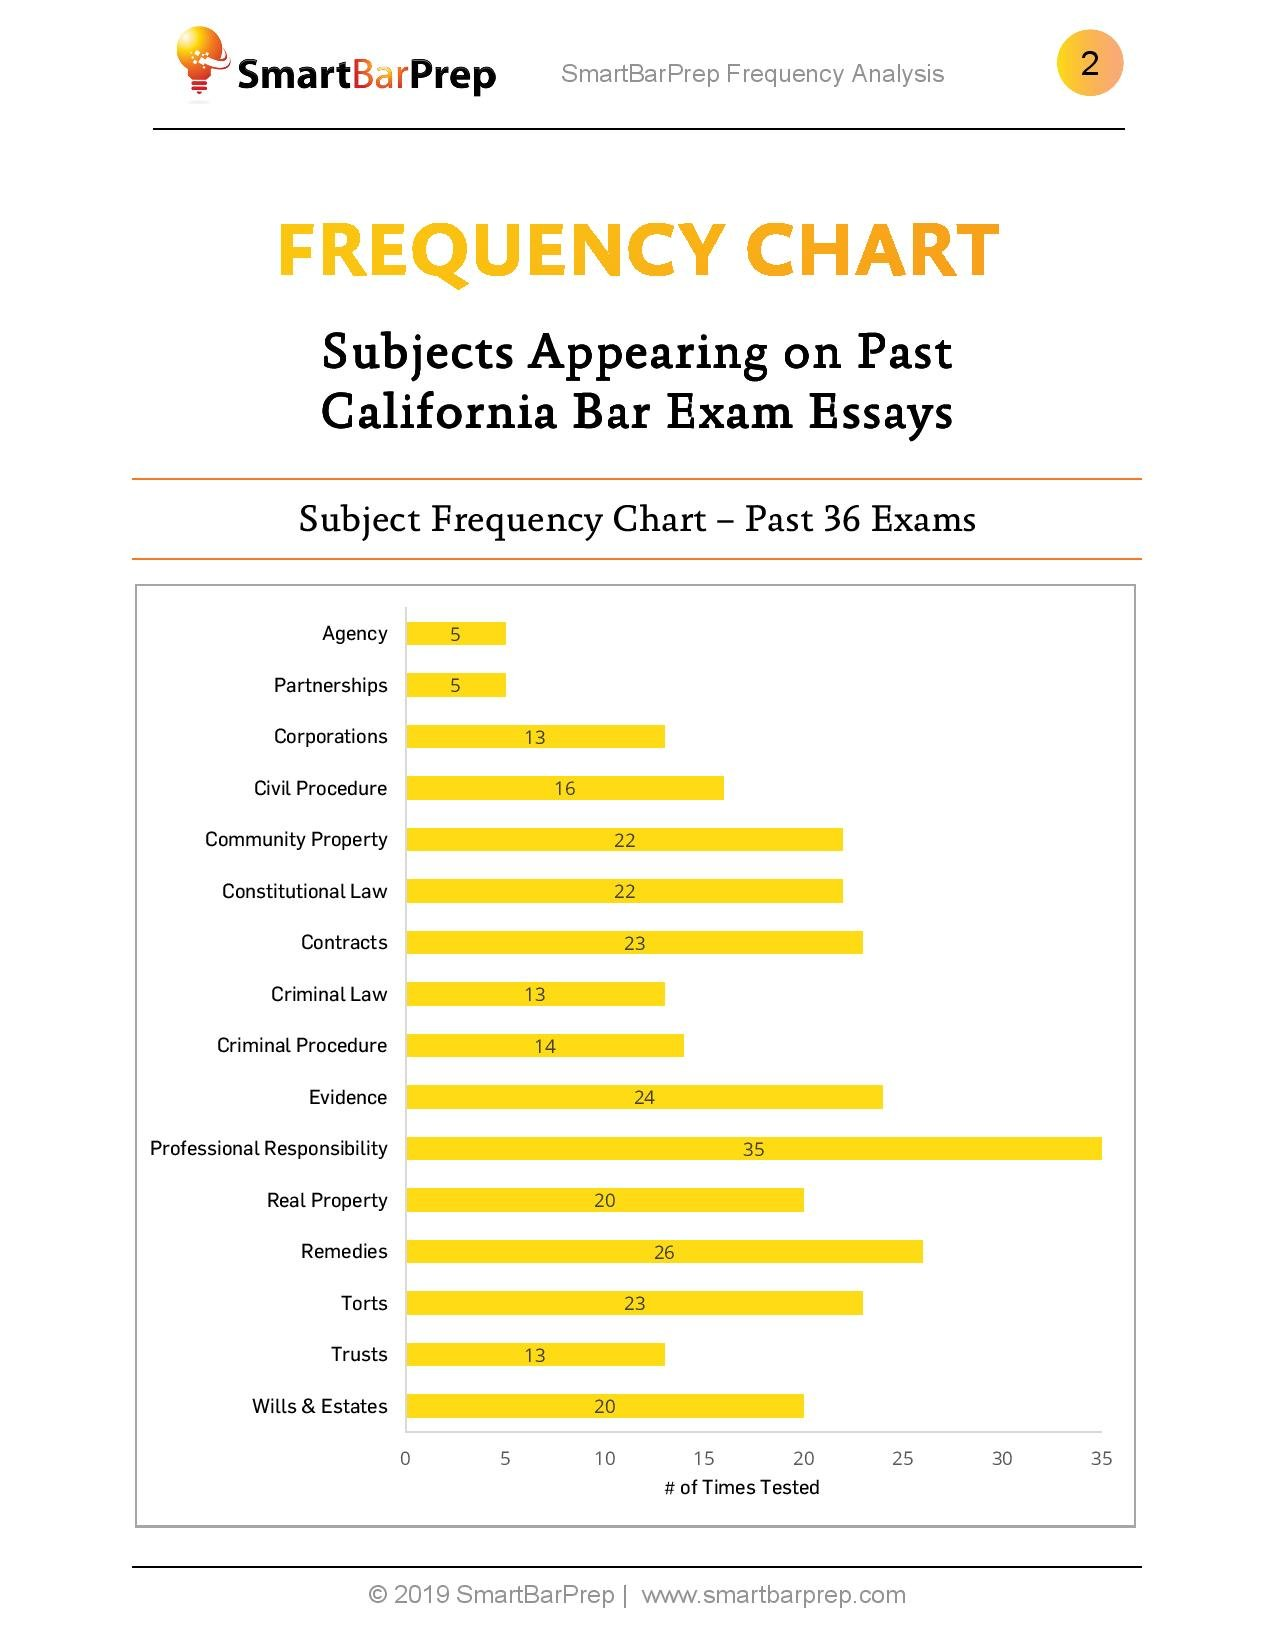 California Essay Frequency Analysis - SmartBarPrep com